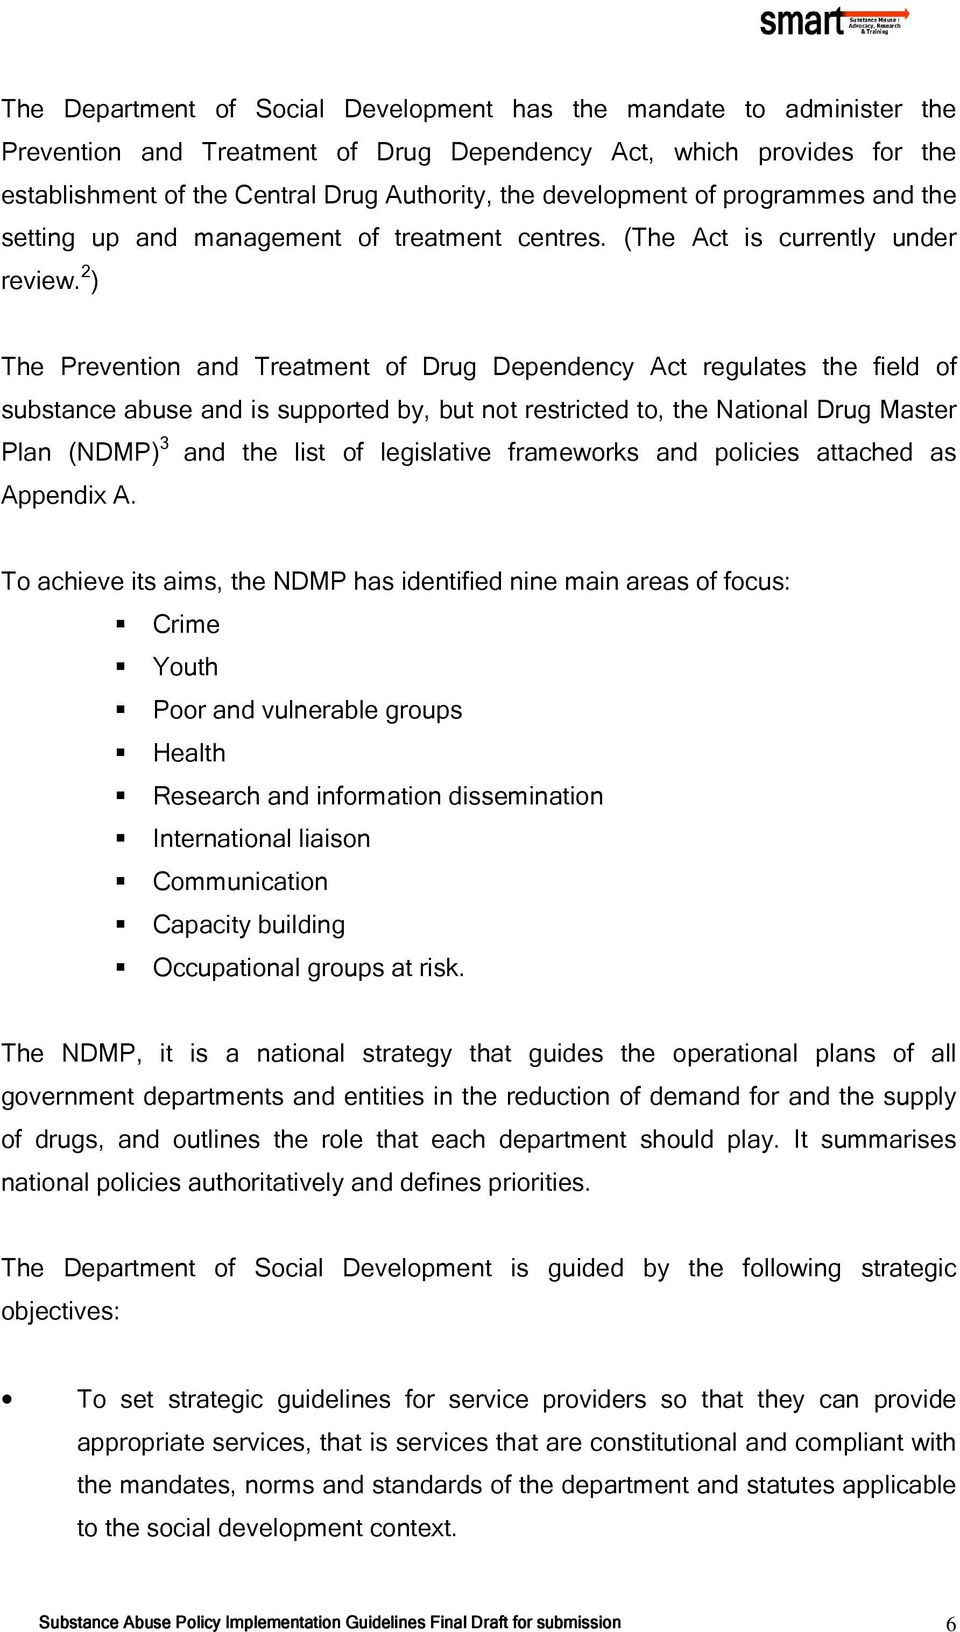 2 ) The Prevention and Treatment of Drug Dependency Act regulates the field of substance abuse and is supported by, but not restricted to, the National Drug Master Plan (NDMP) 3 and the list of